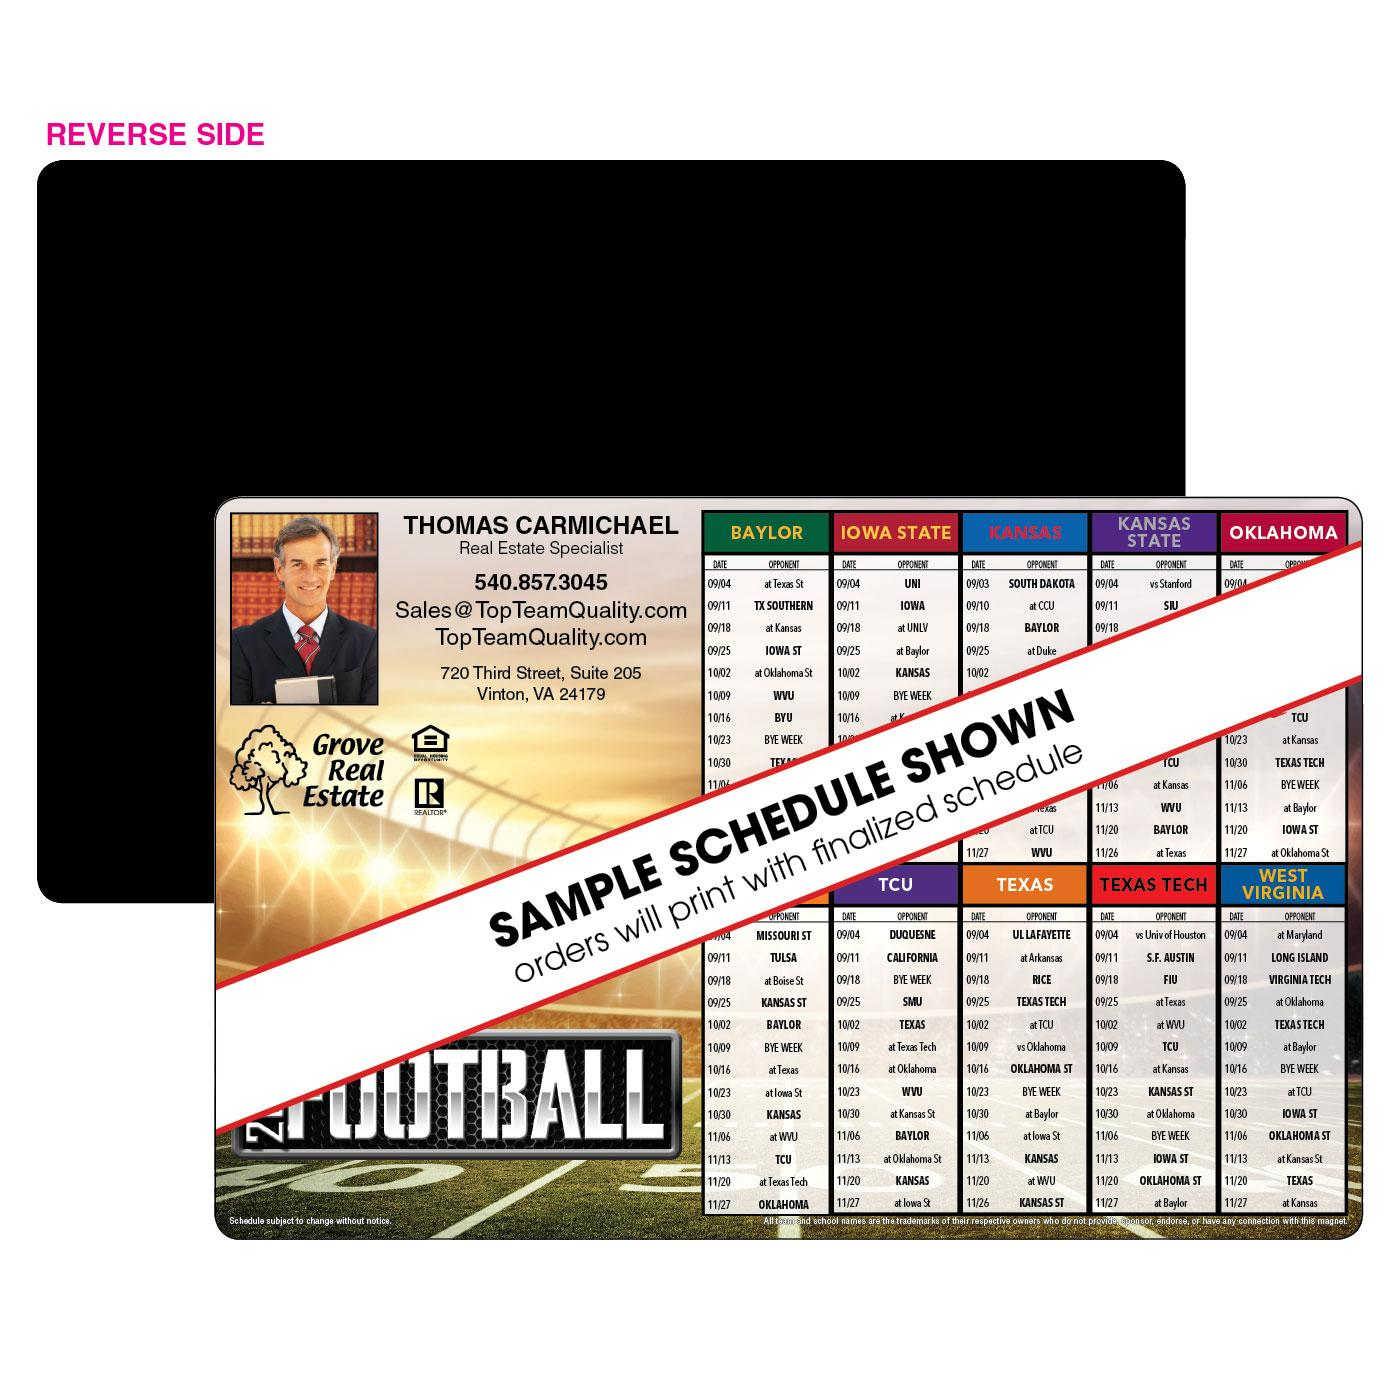 10 Team Jumbo Football Schedule